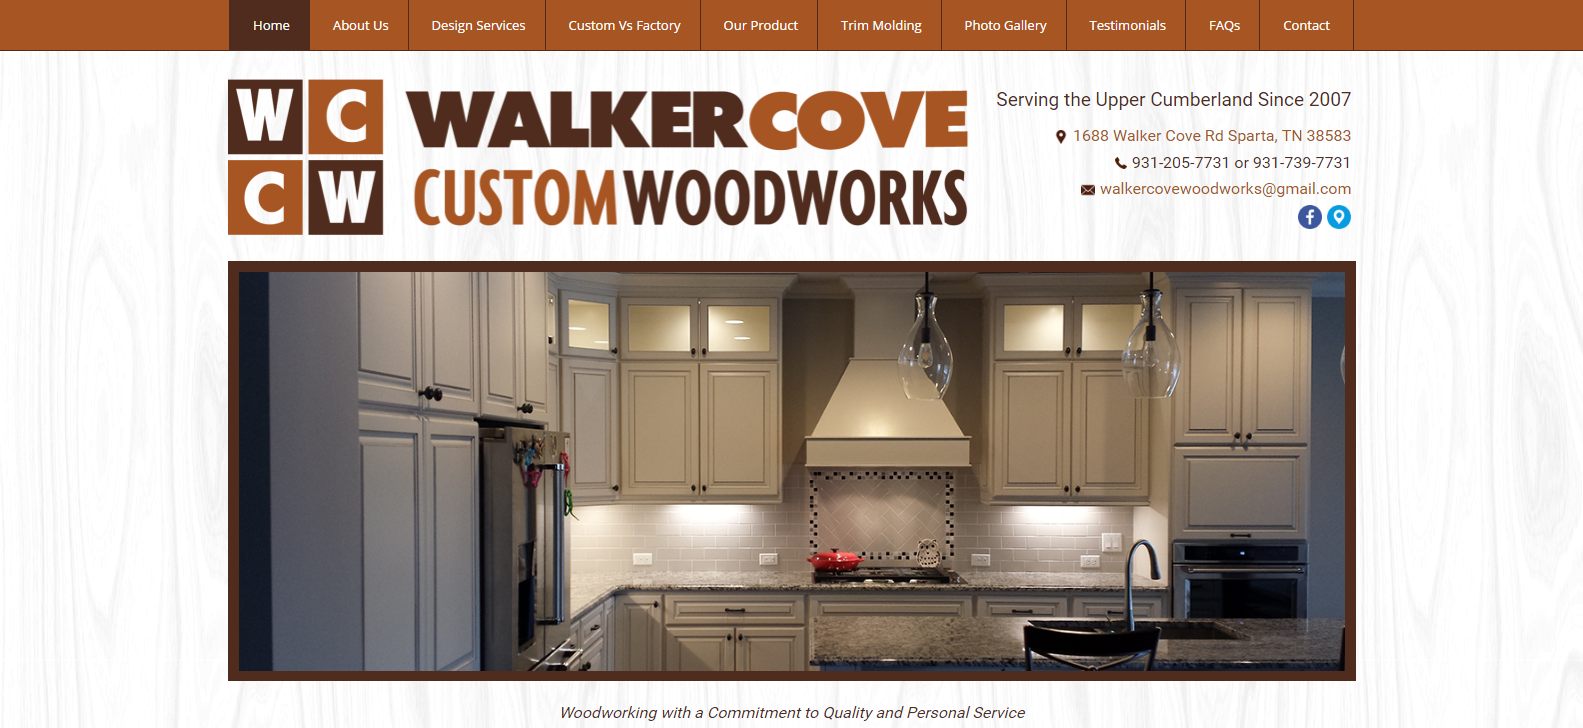 Walker Cove Custom Woodworks<div style='clear:both;width:100%;height:0px;'></div><span class='cat'>Individual/Group, Small Business</span>